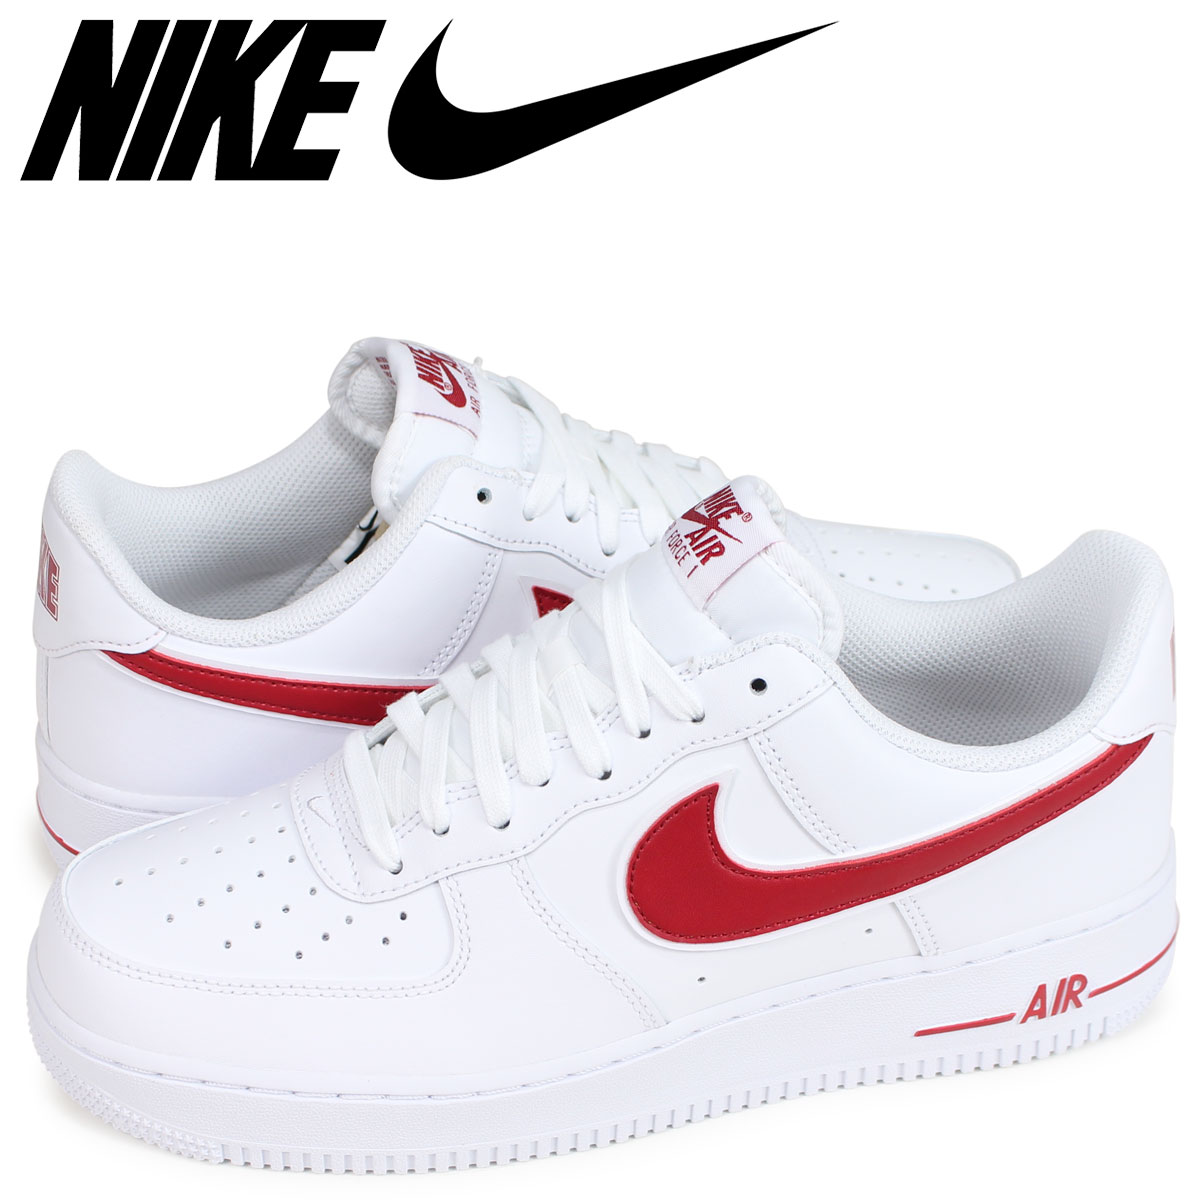 7c0a3a21ed06 NIKE AIR FORCE 1 07 3 Nike air force 1 sneakers men white AO2423-102  load  planned Shinnyu load in reservation product 2 14 containing